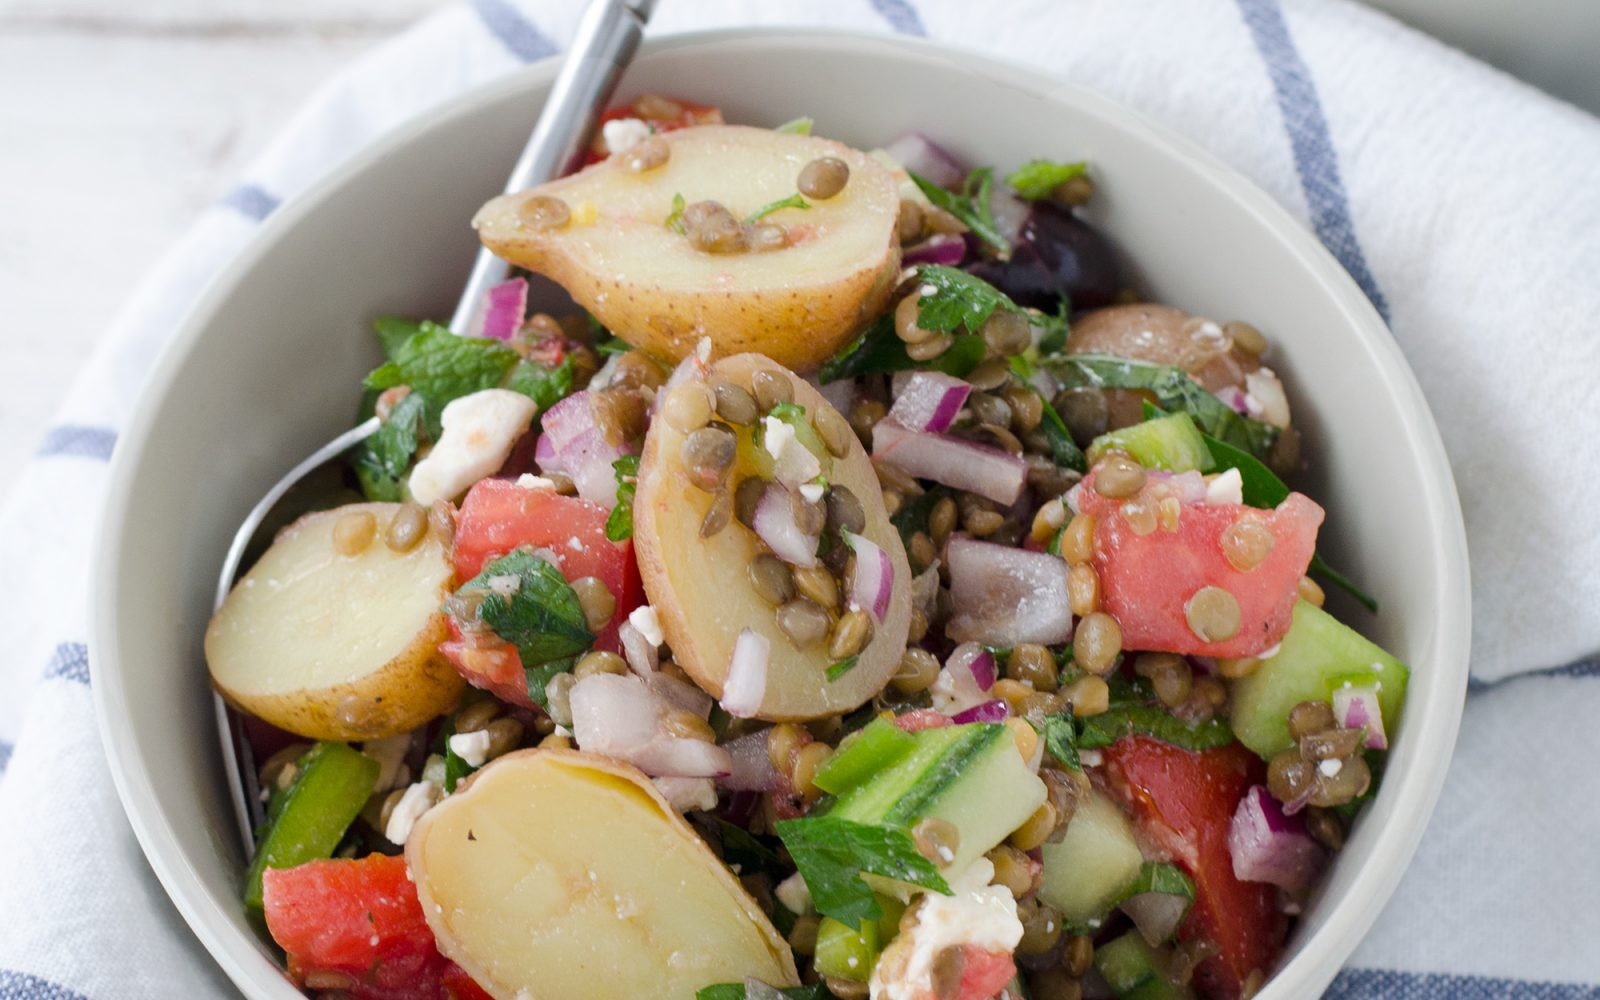 Greek Lentil and Potato Salad